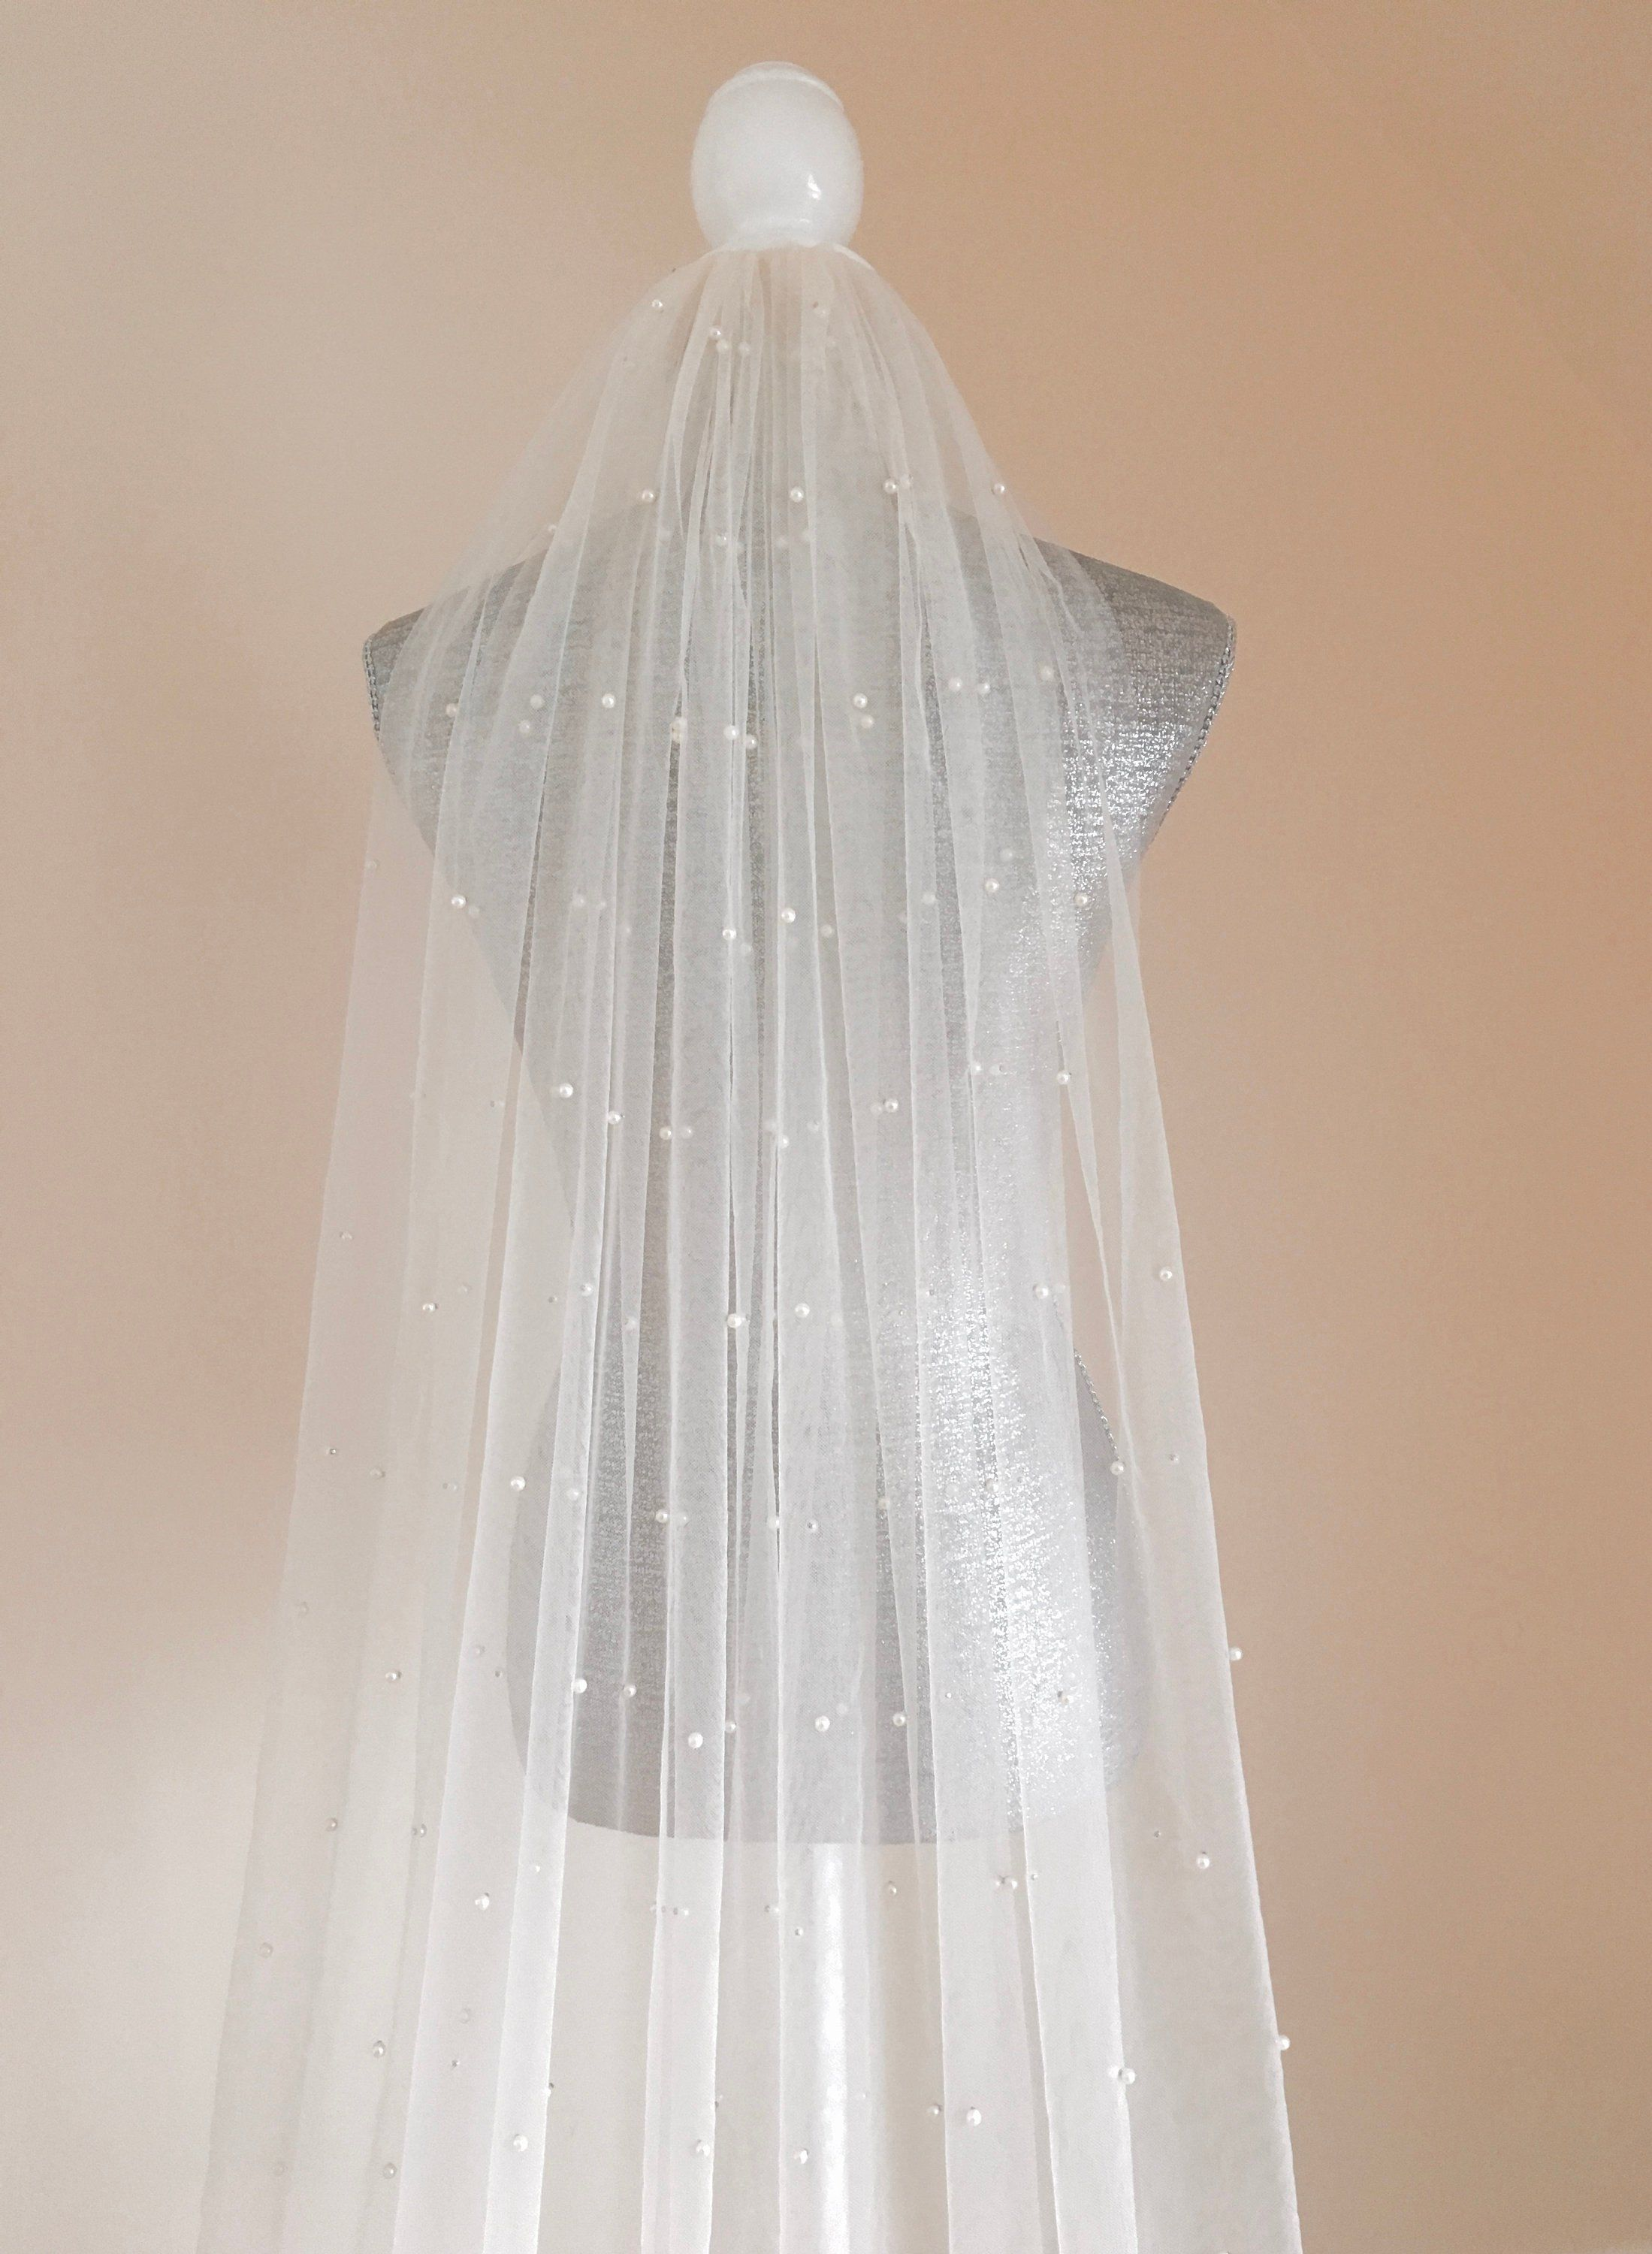 Pearl Soft Veil Chapel Veil Cathedral Veil Fingertip Etsy Pearl Veil Long Veil Wedding Cathedral Veil